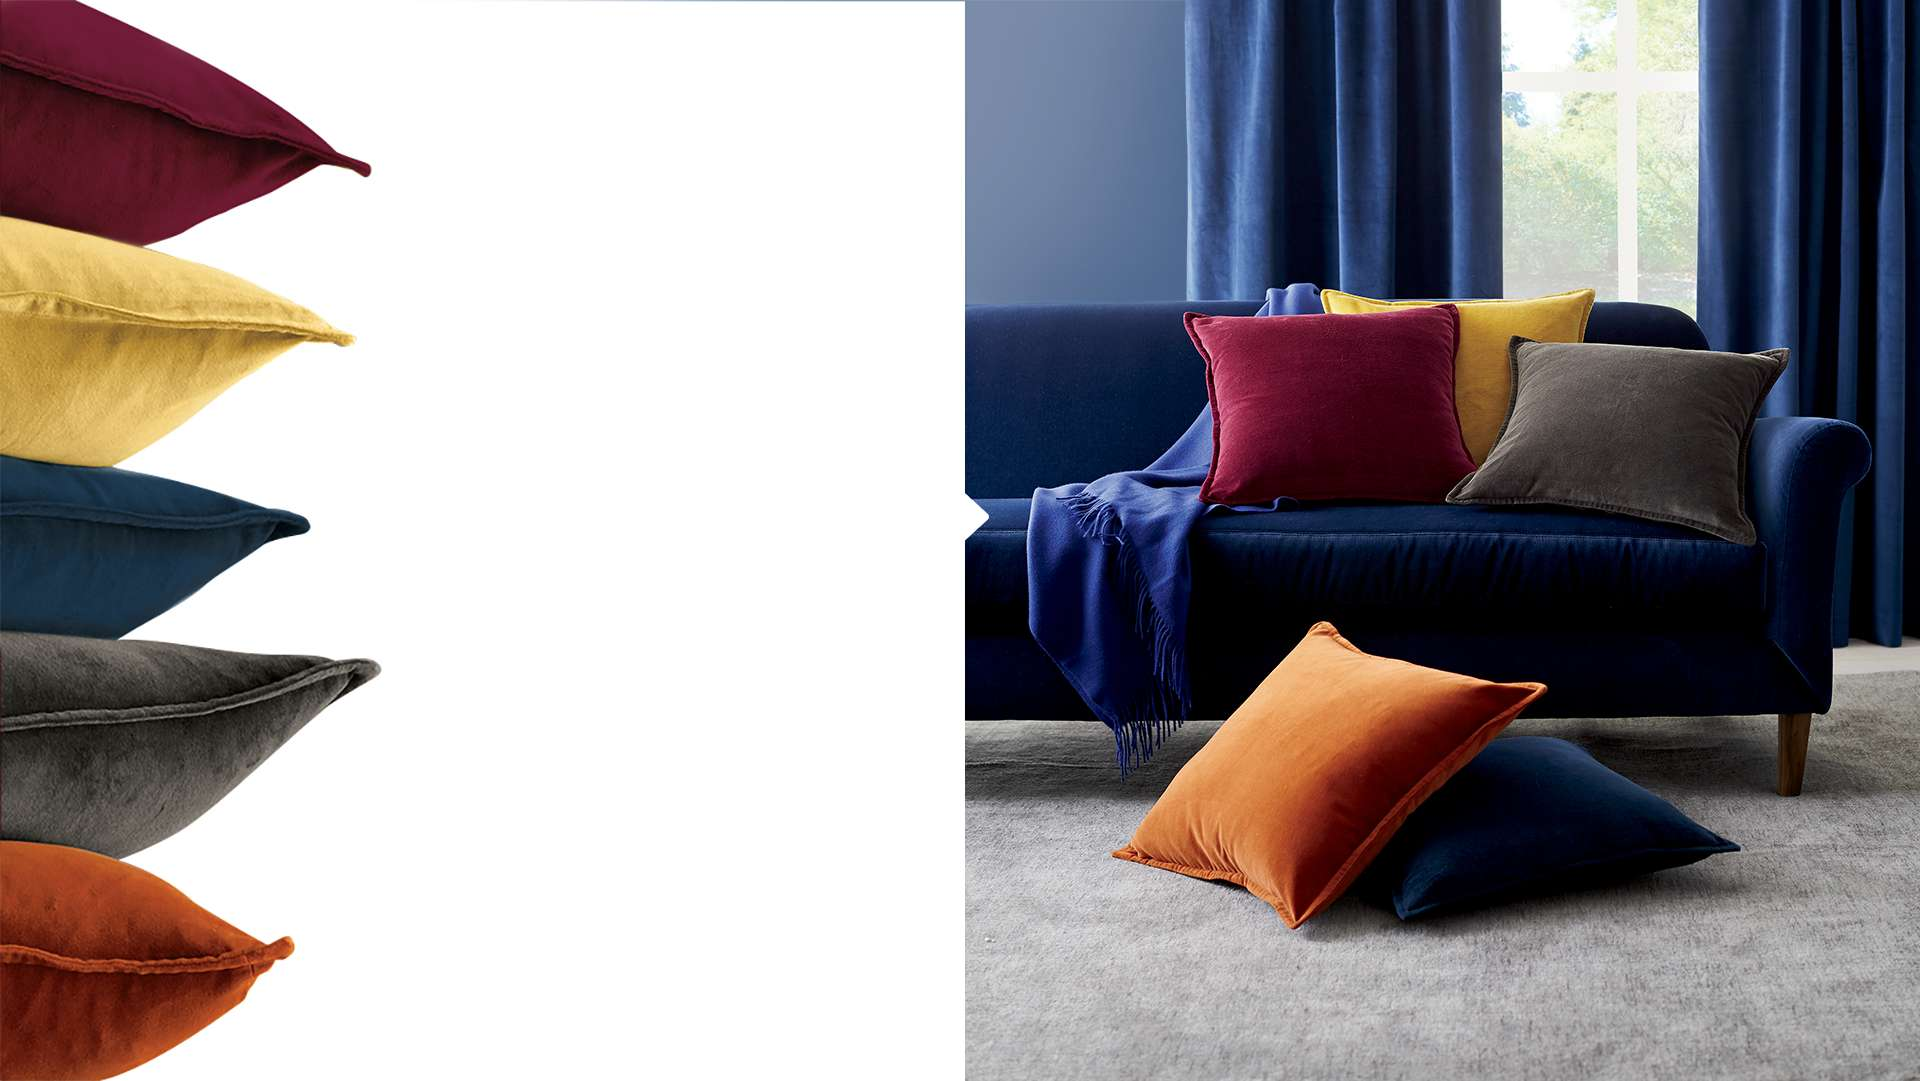 Velvet pillows stacked and in a pile on a velvet sofa